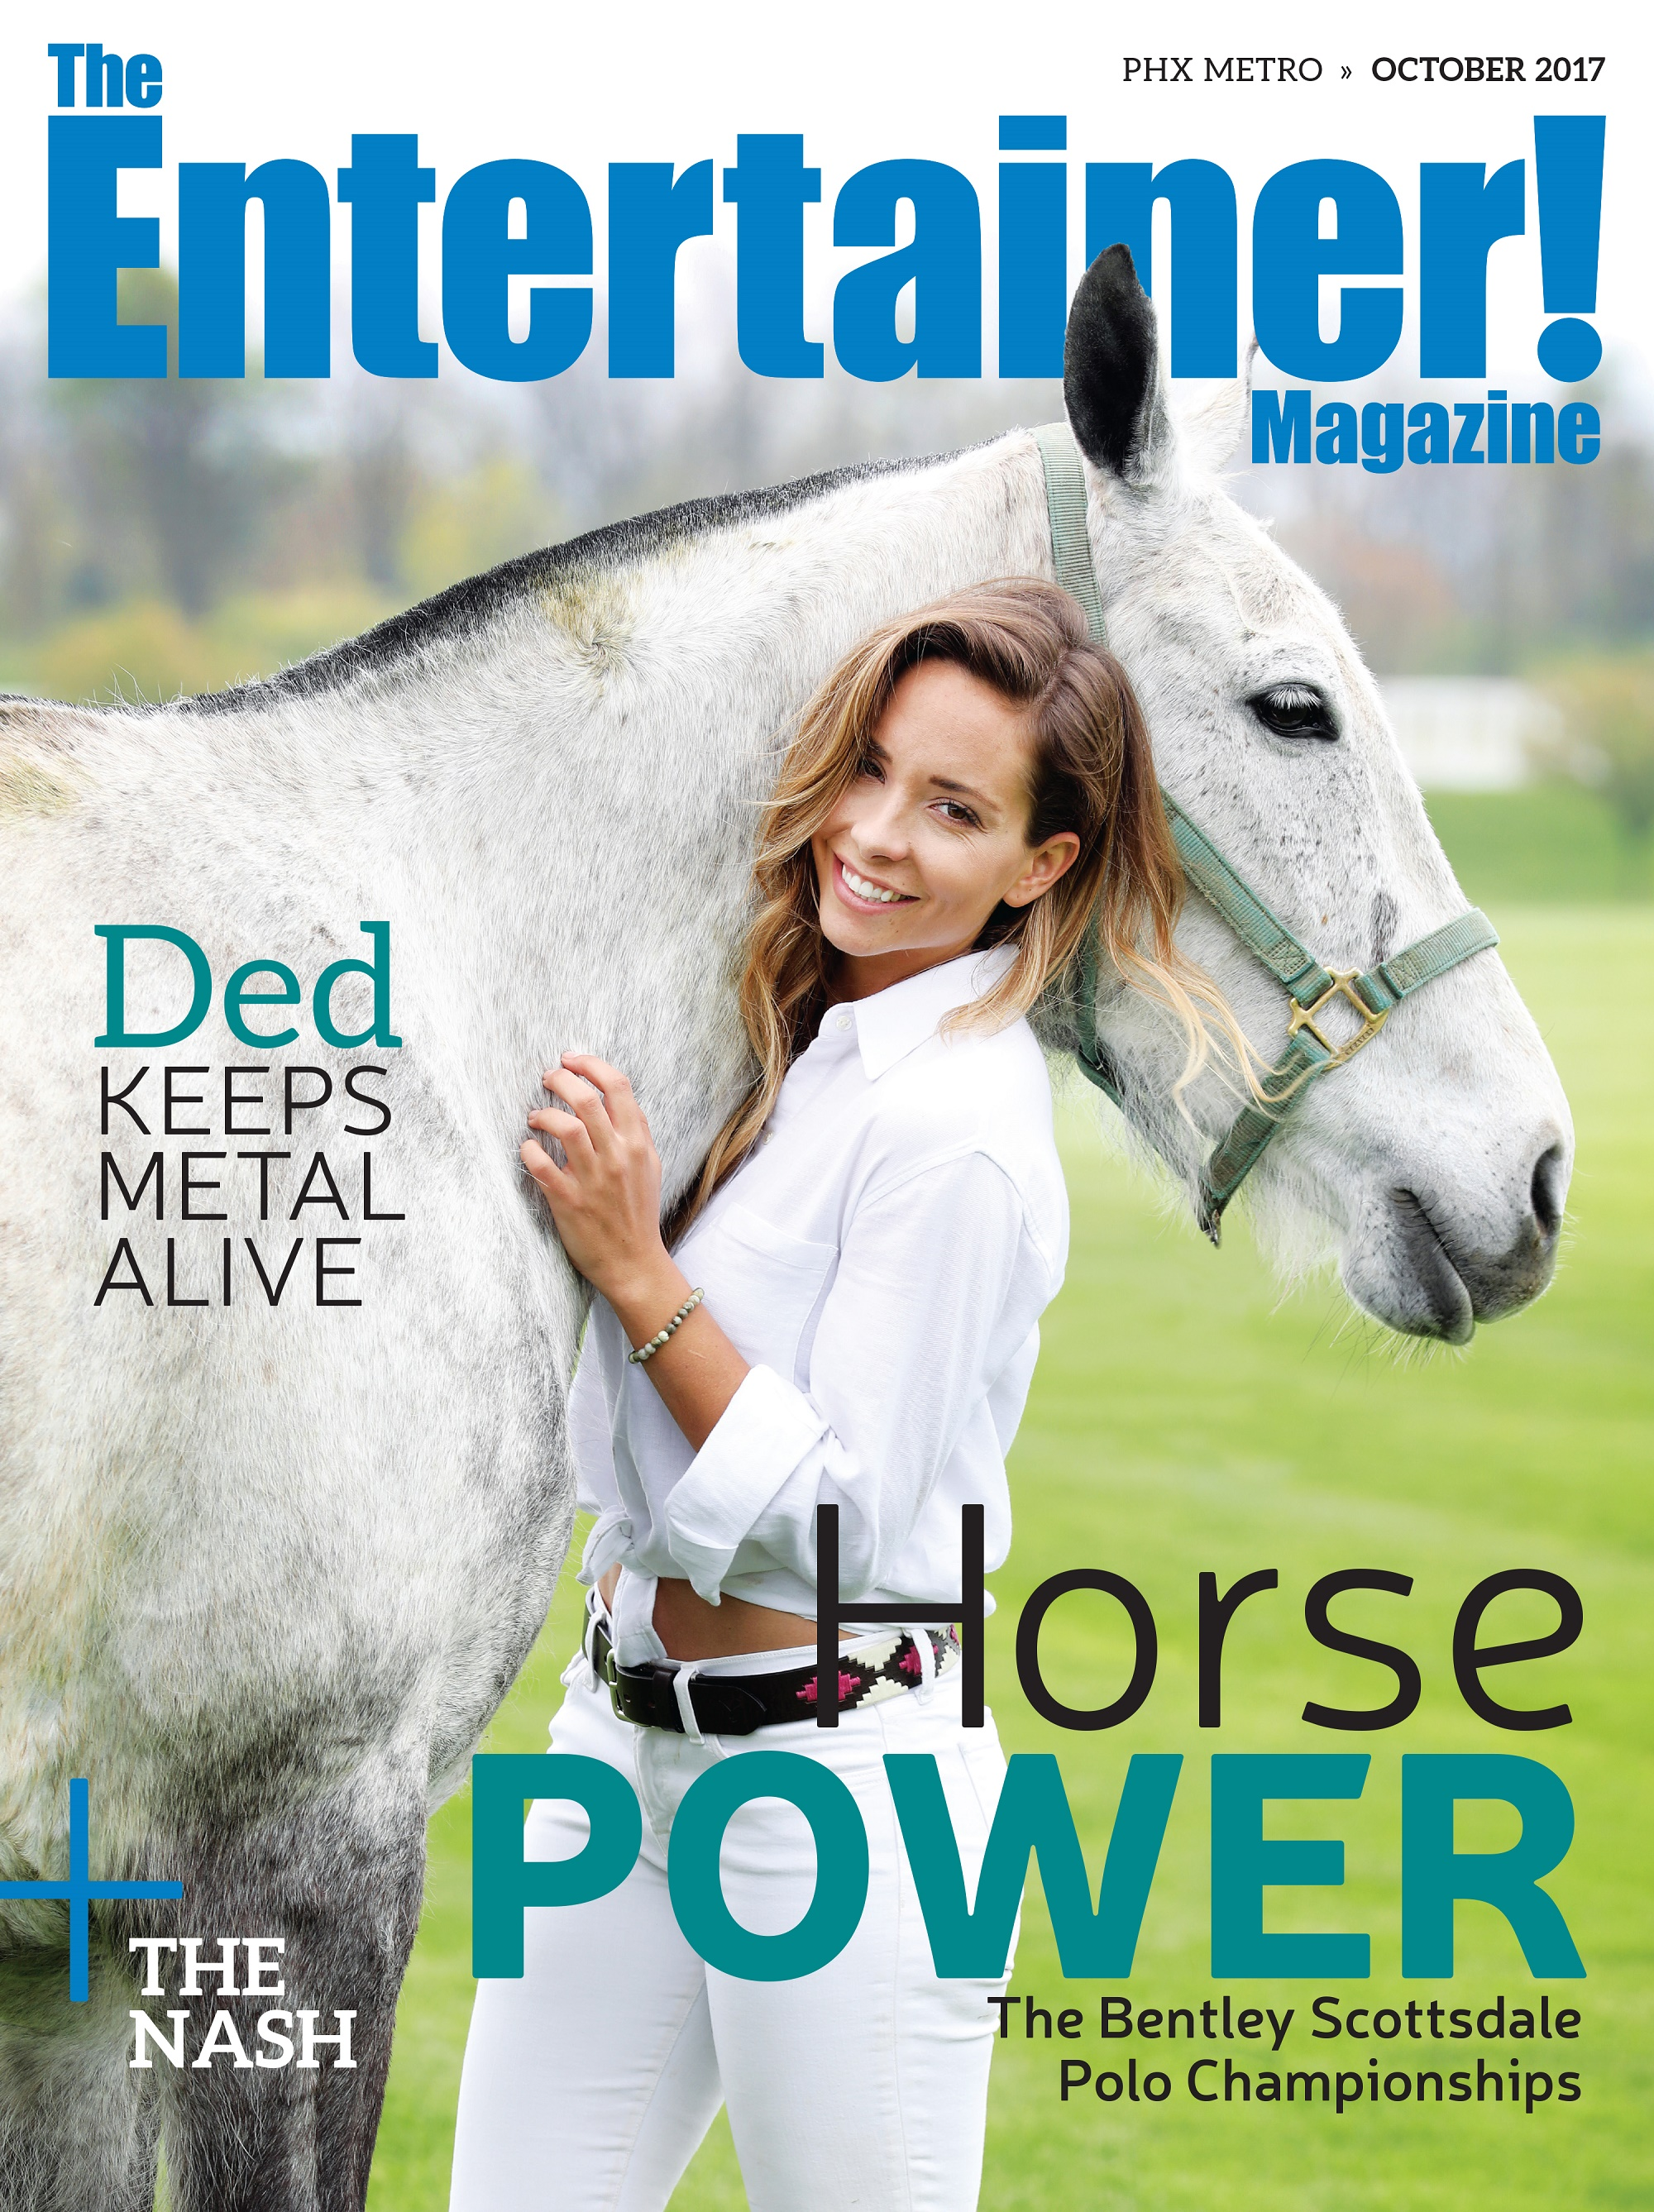 The Entertainer Magazine Cover - Ded - Oct. 2017a